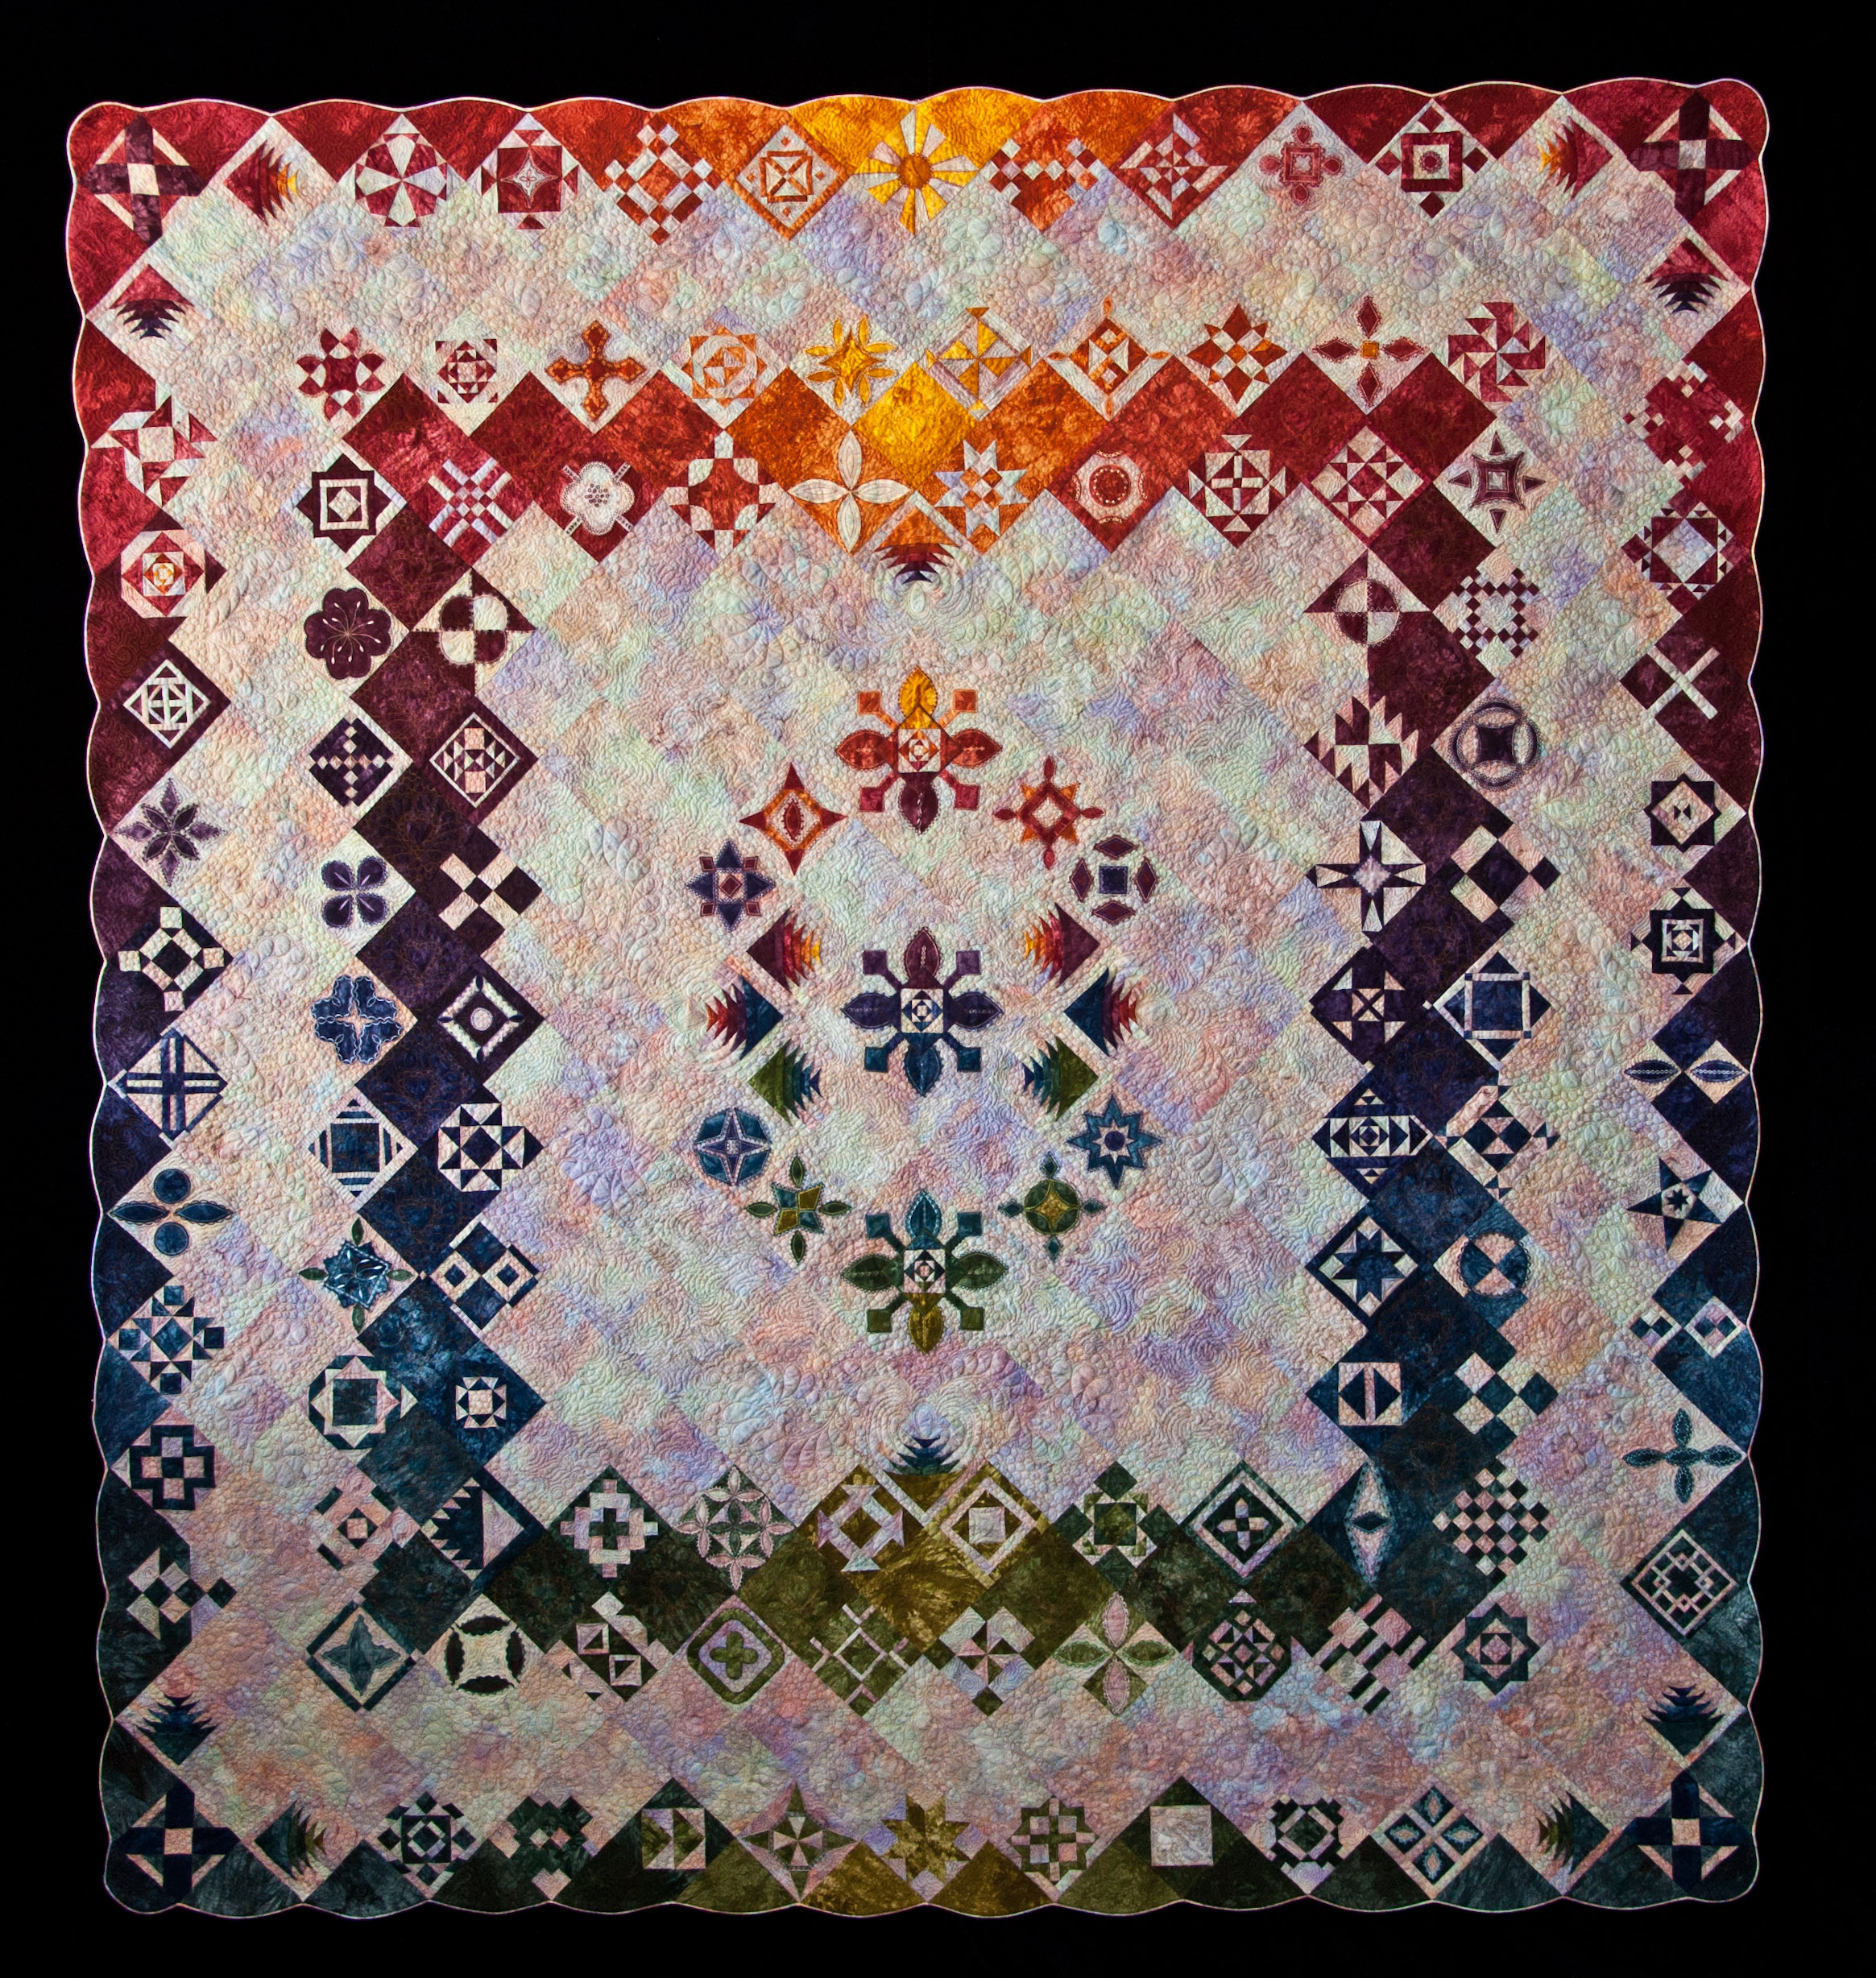 Freemotion Quilting Boot Camp and Lecture Event with Beth Schillig - : quilting event - Adamdwight.com